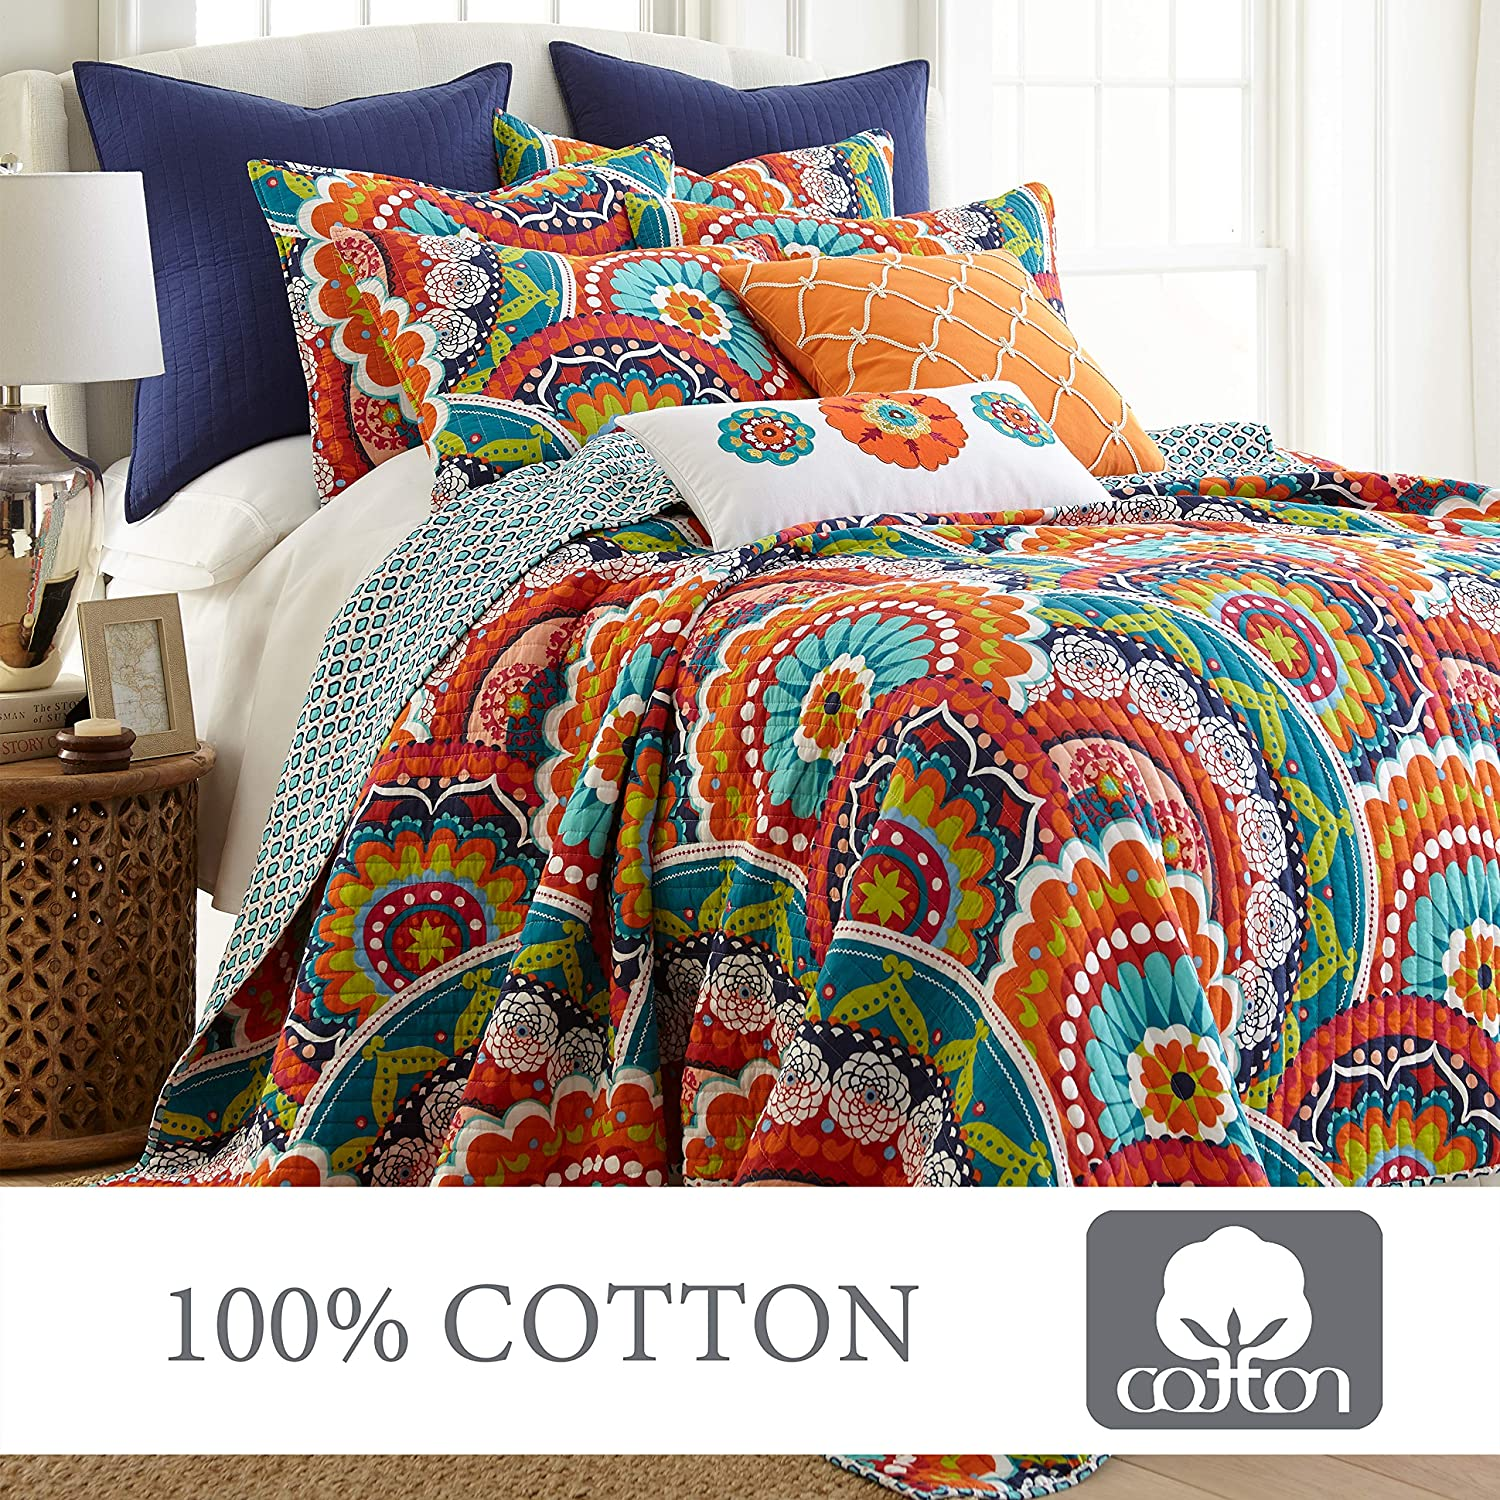 levtex home serendipity quilt set king quilt two king pillow shams boho floral in orange teal red blue quilt size 106x92in and pillow